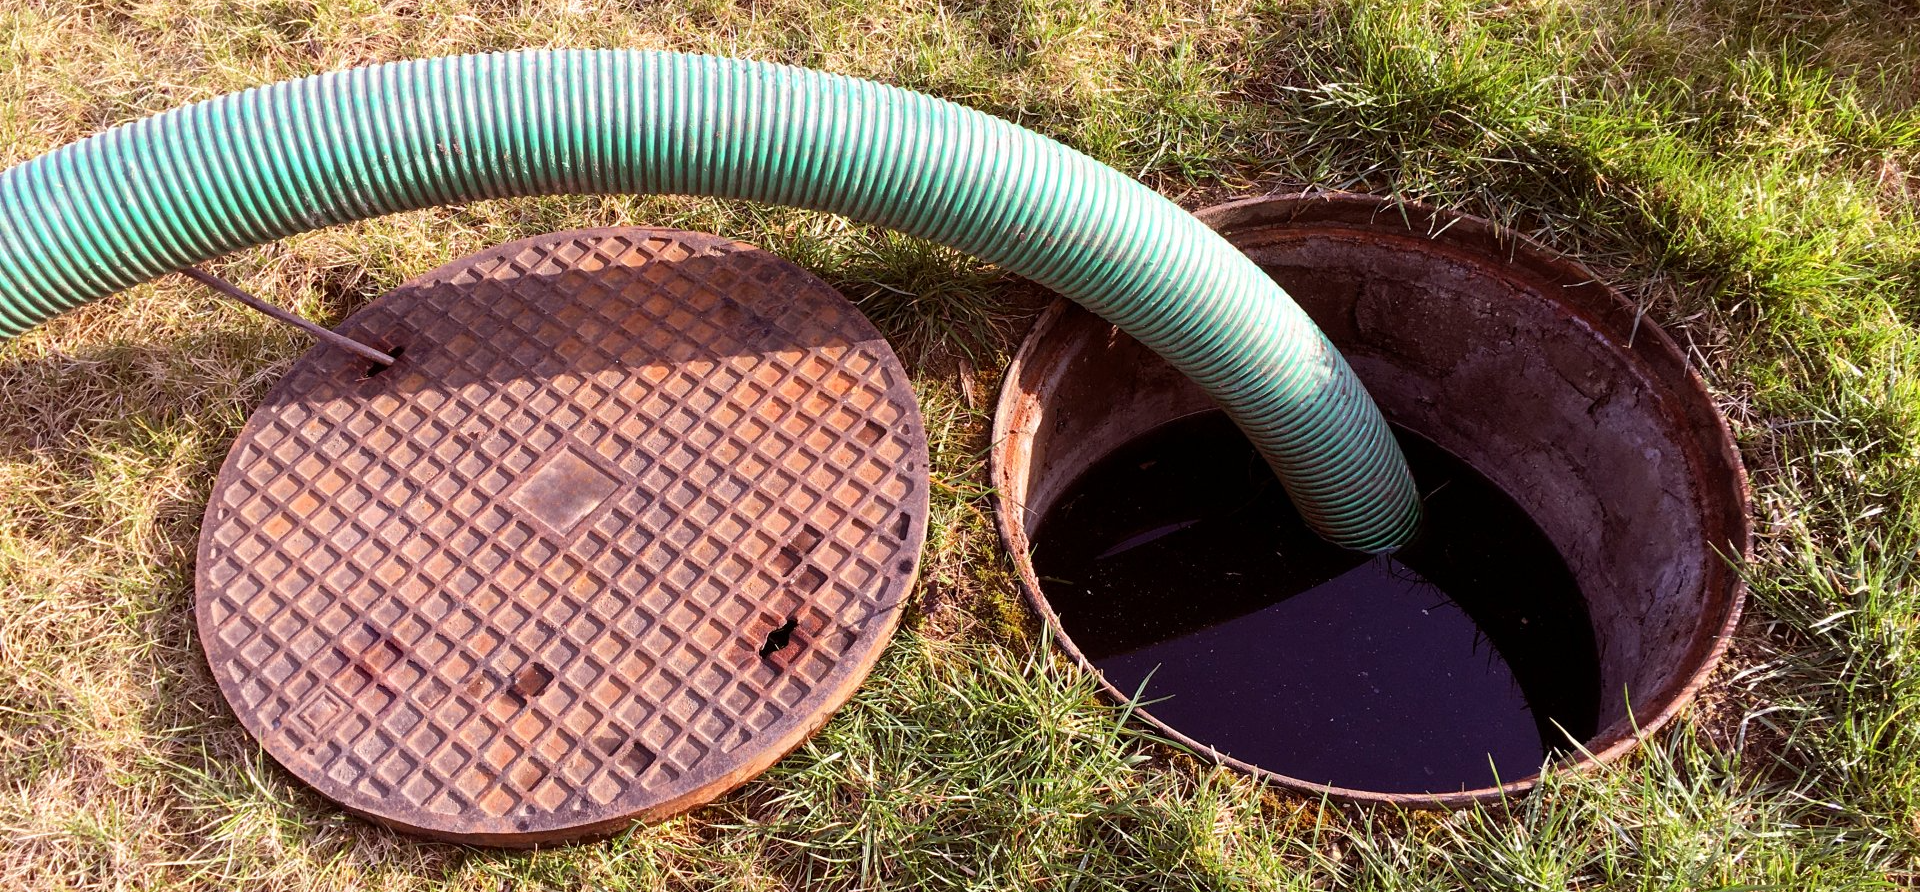 Septic System Additives from Clean Earth Septic